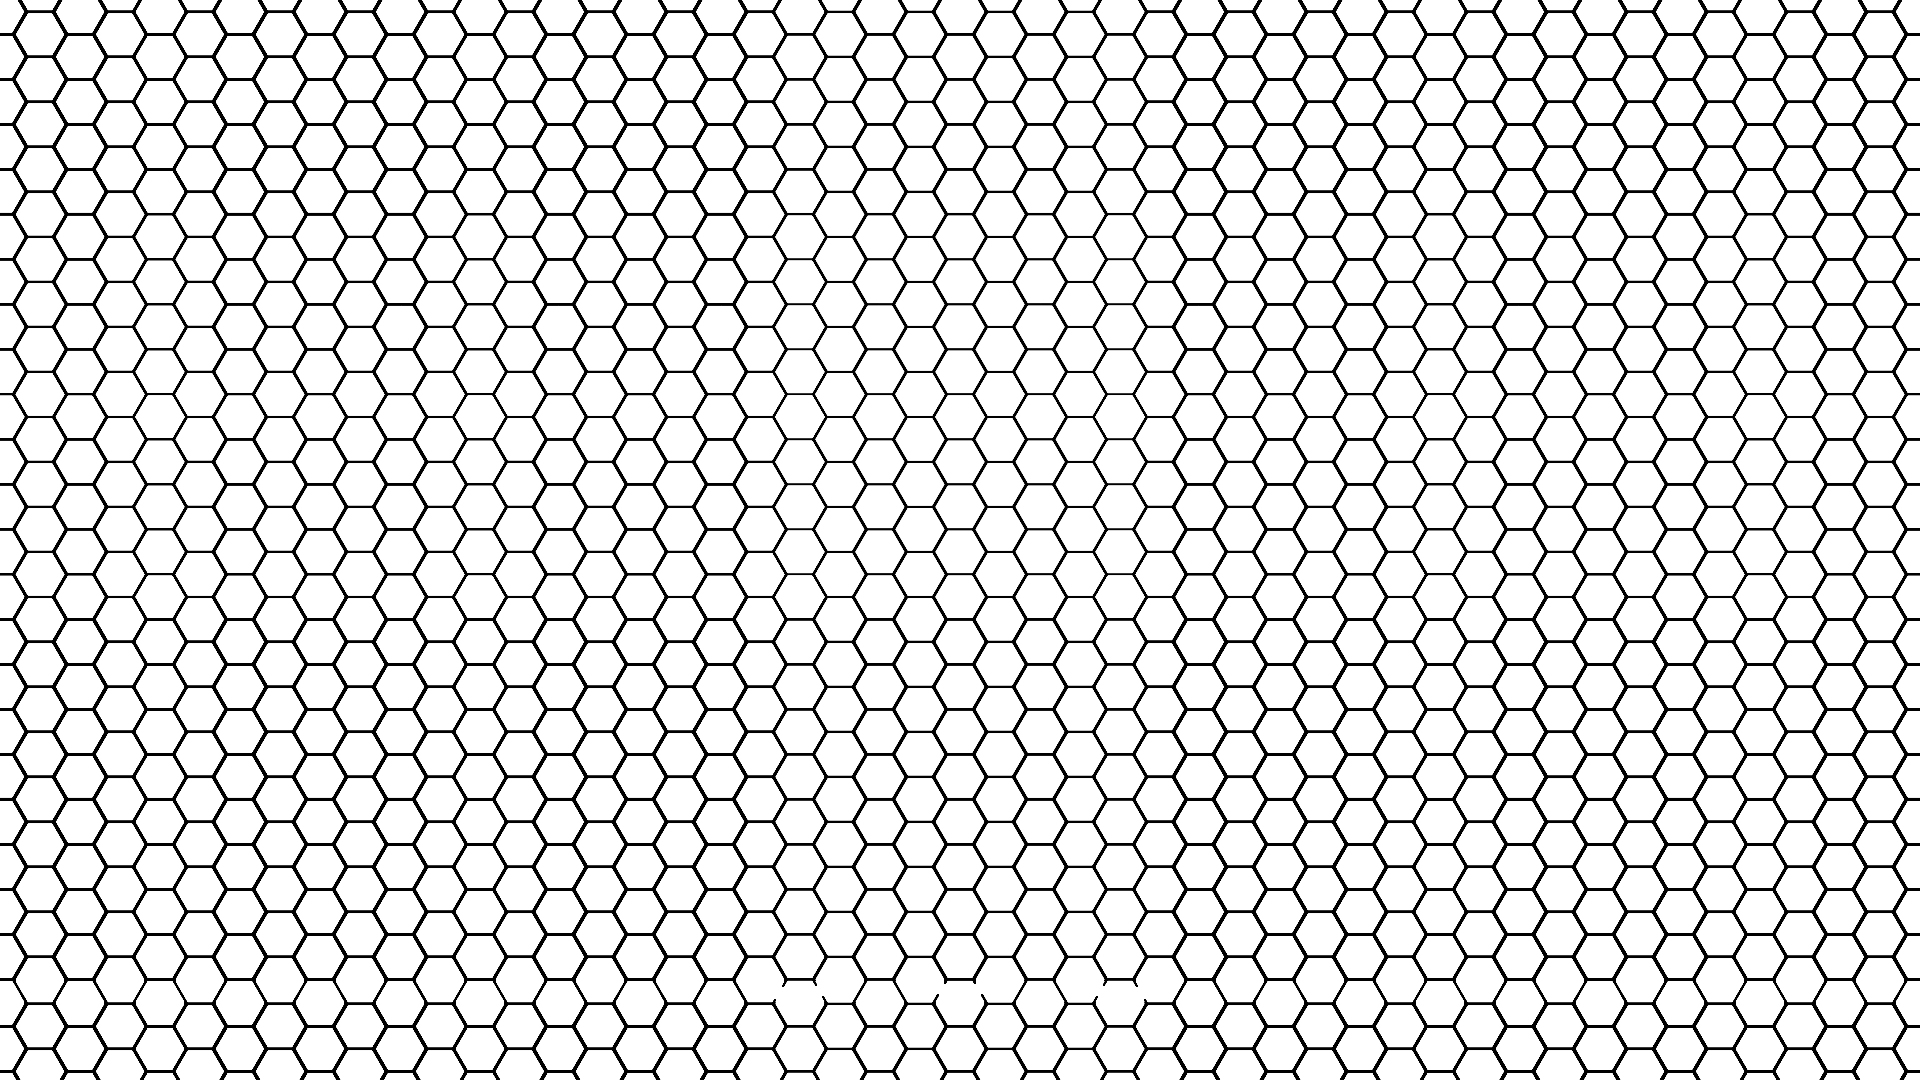 Pattern Design For Backgrounds